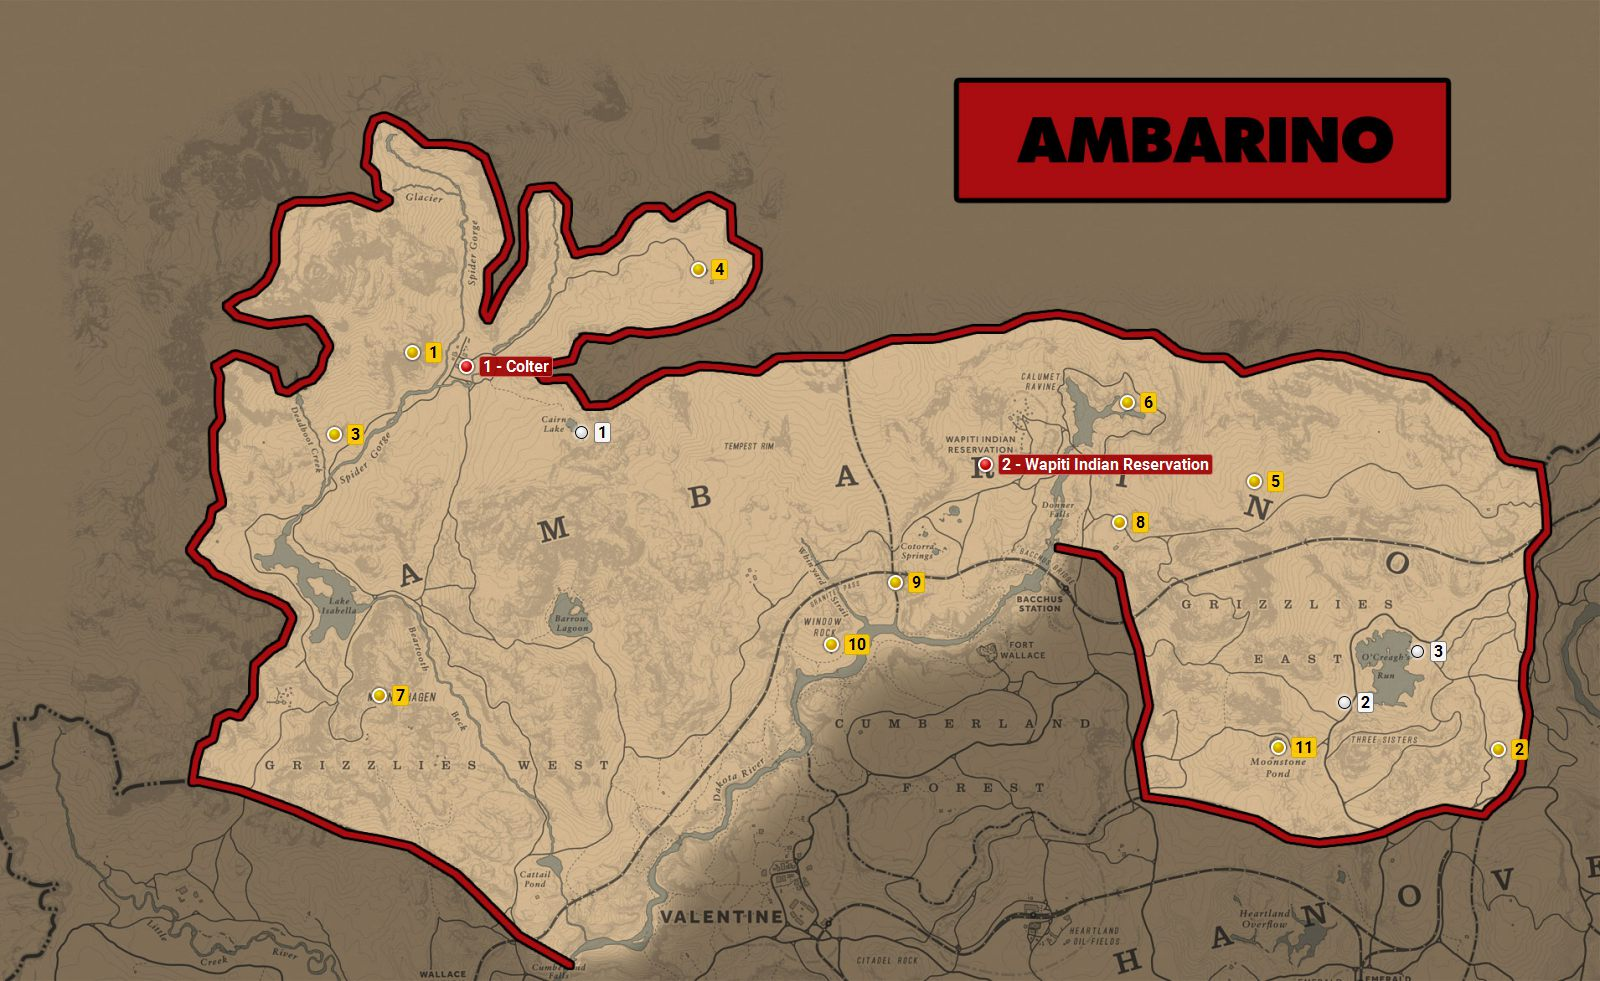 Ambarino - Red Dead Redemption 2 World Atlas Map - Red Dead